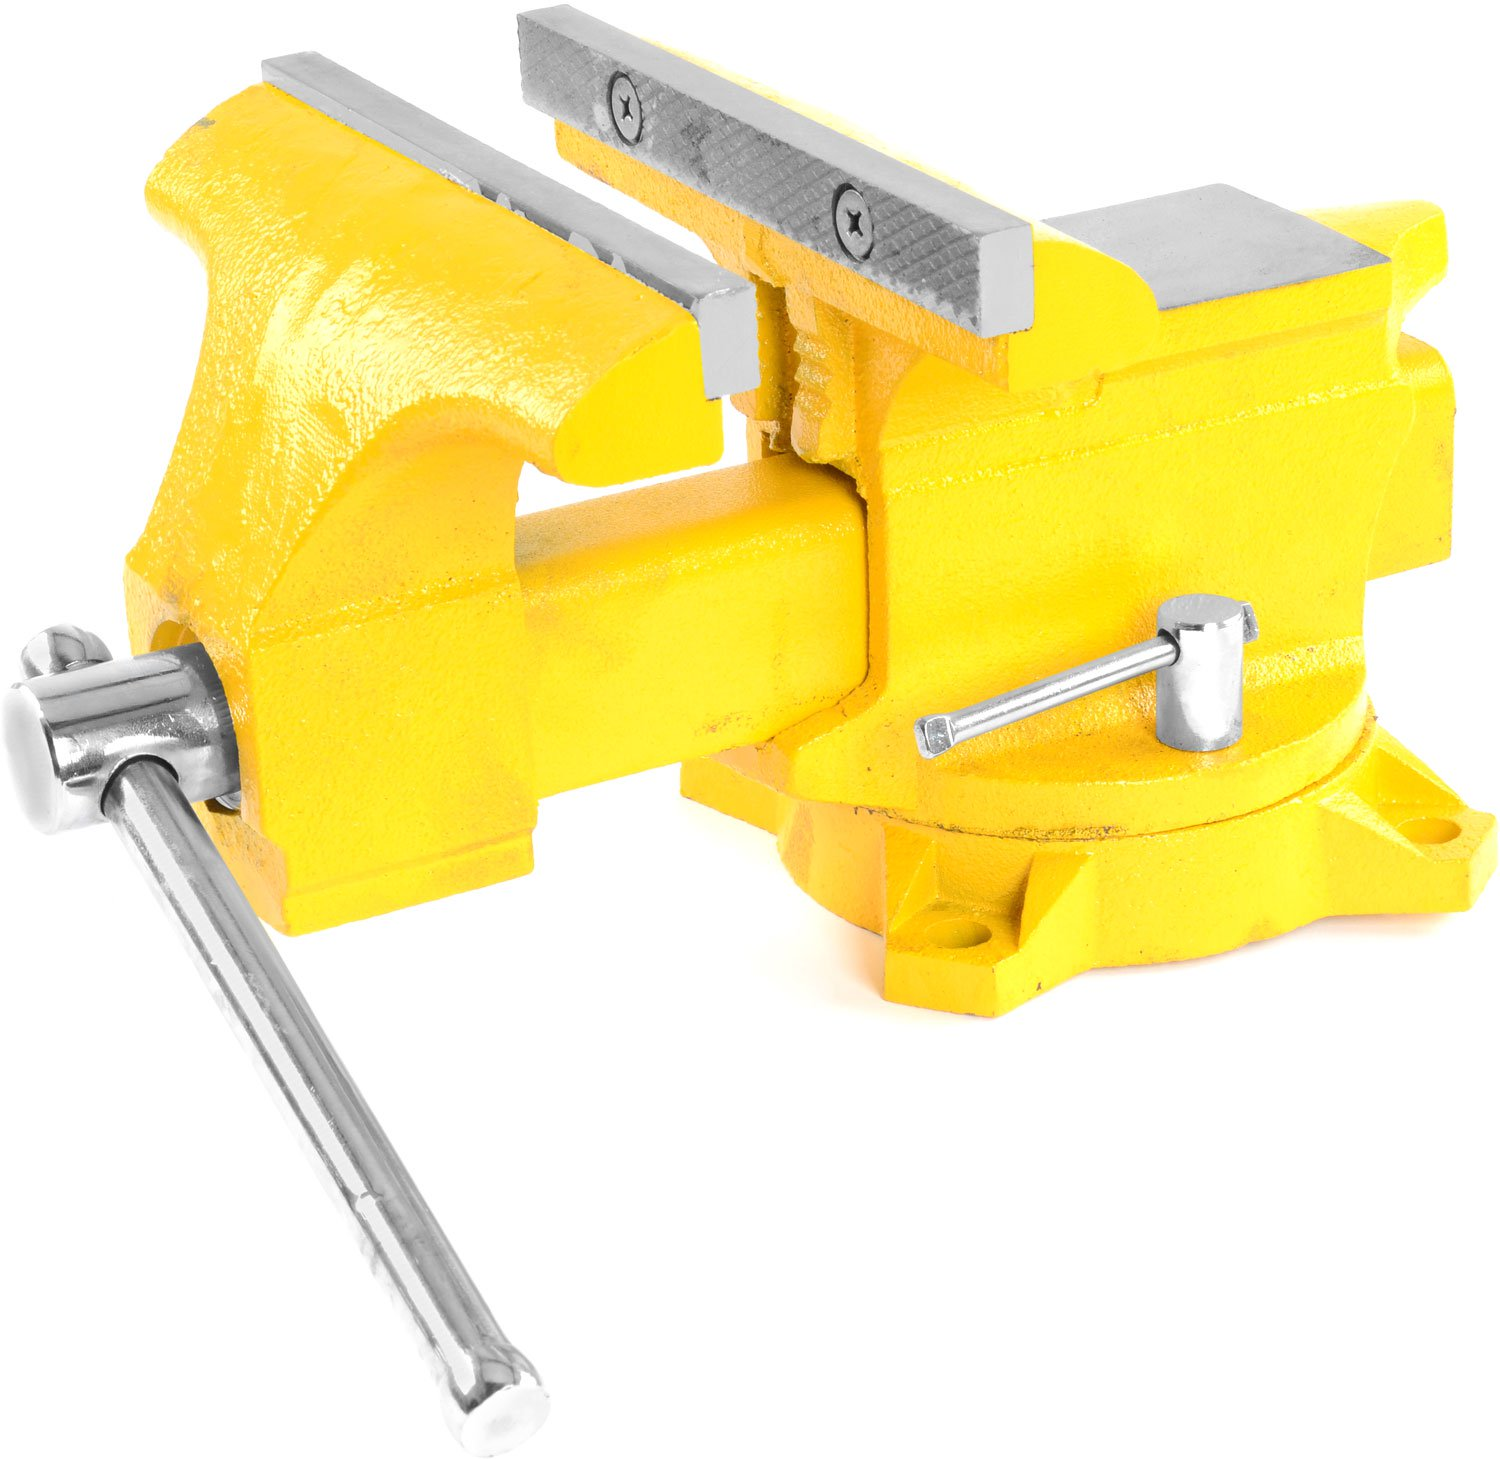 JEGS Performance Products 805440 Bench Vise 8 Replaceable Jaws 4-3 4 Maximum Ope by